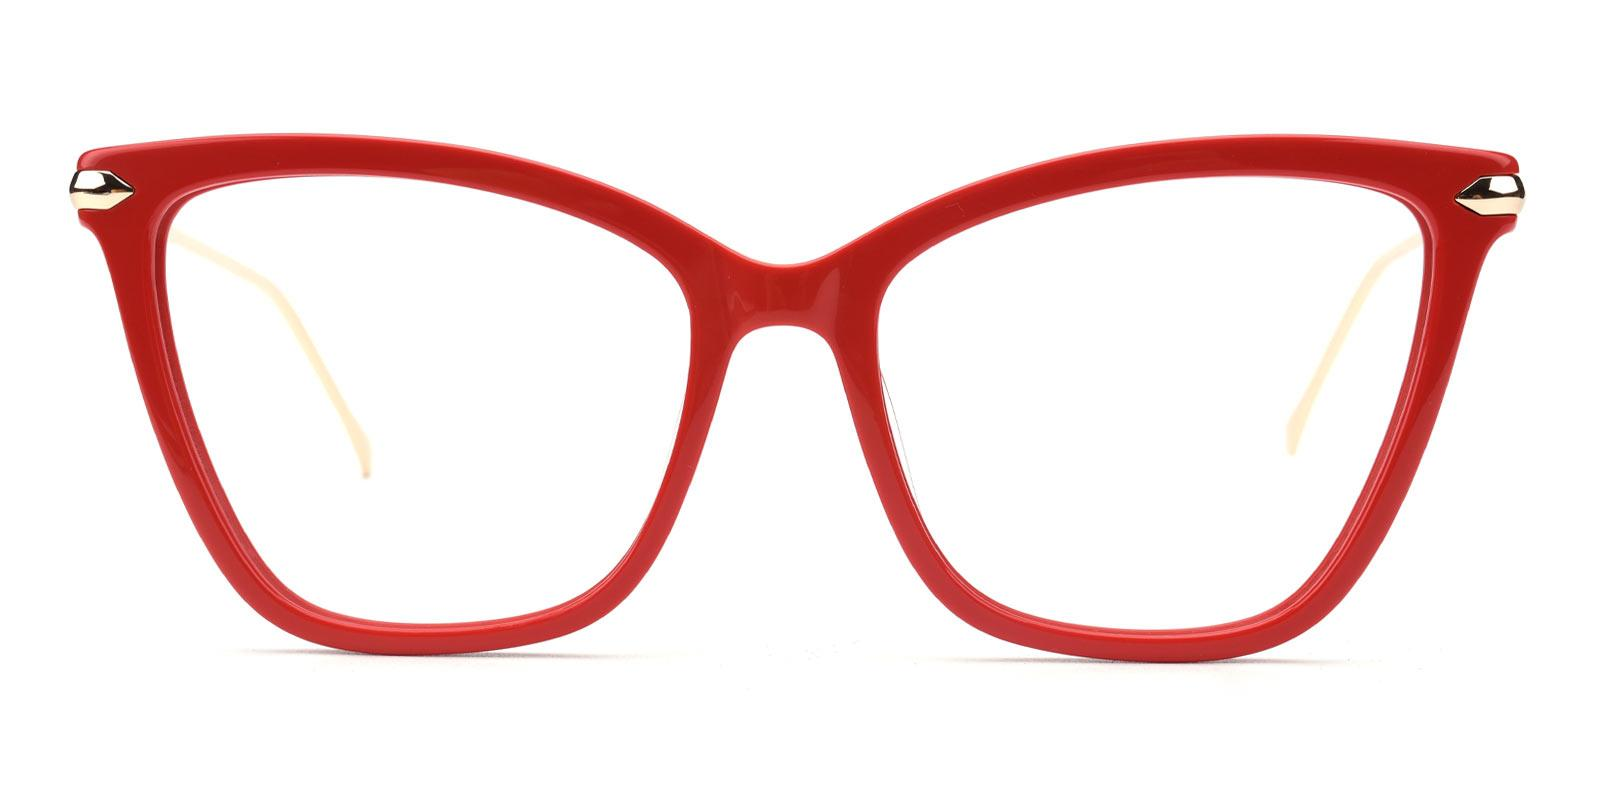 Queenie-Red-Cat-Combination-Eyeglasses-additional2